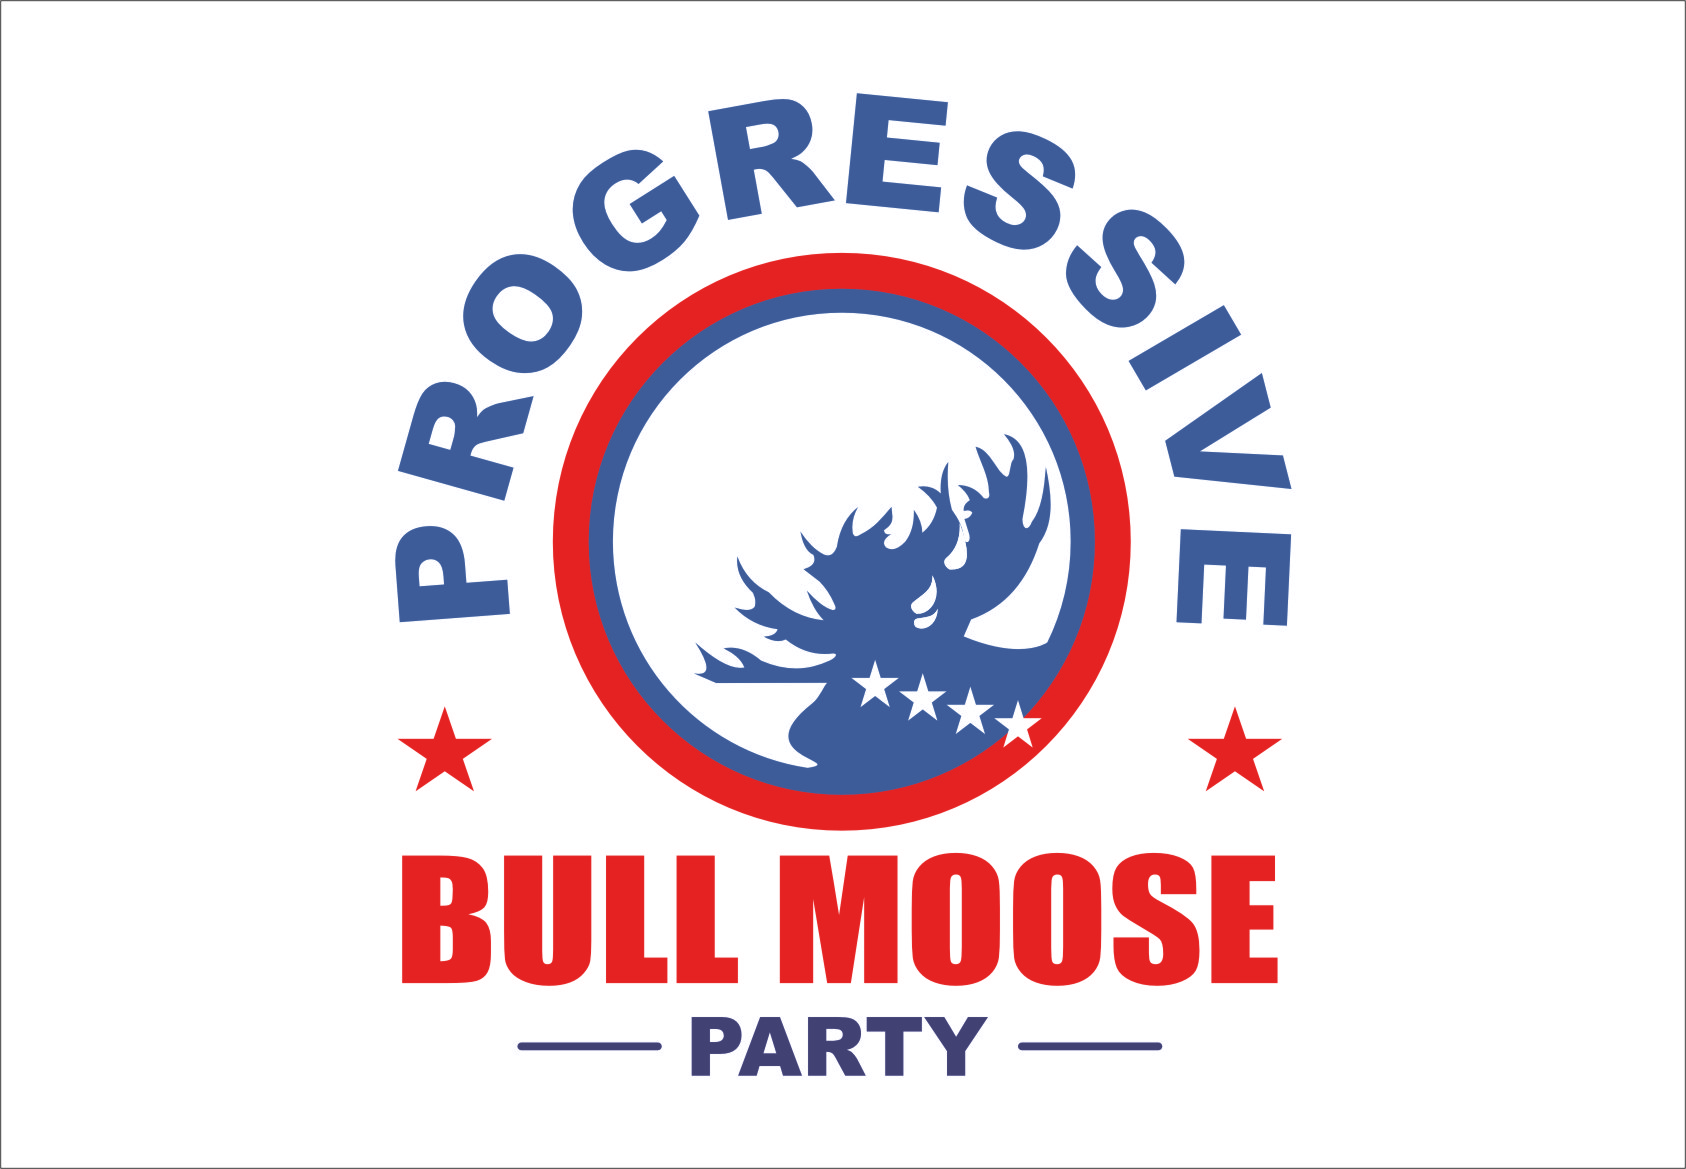 Logo Design by RasYa Muhammad Athaya - Entry No. 98 in the Logo Design Contest Progressive Bull Moose Party Logo Design.